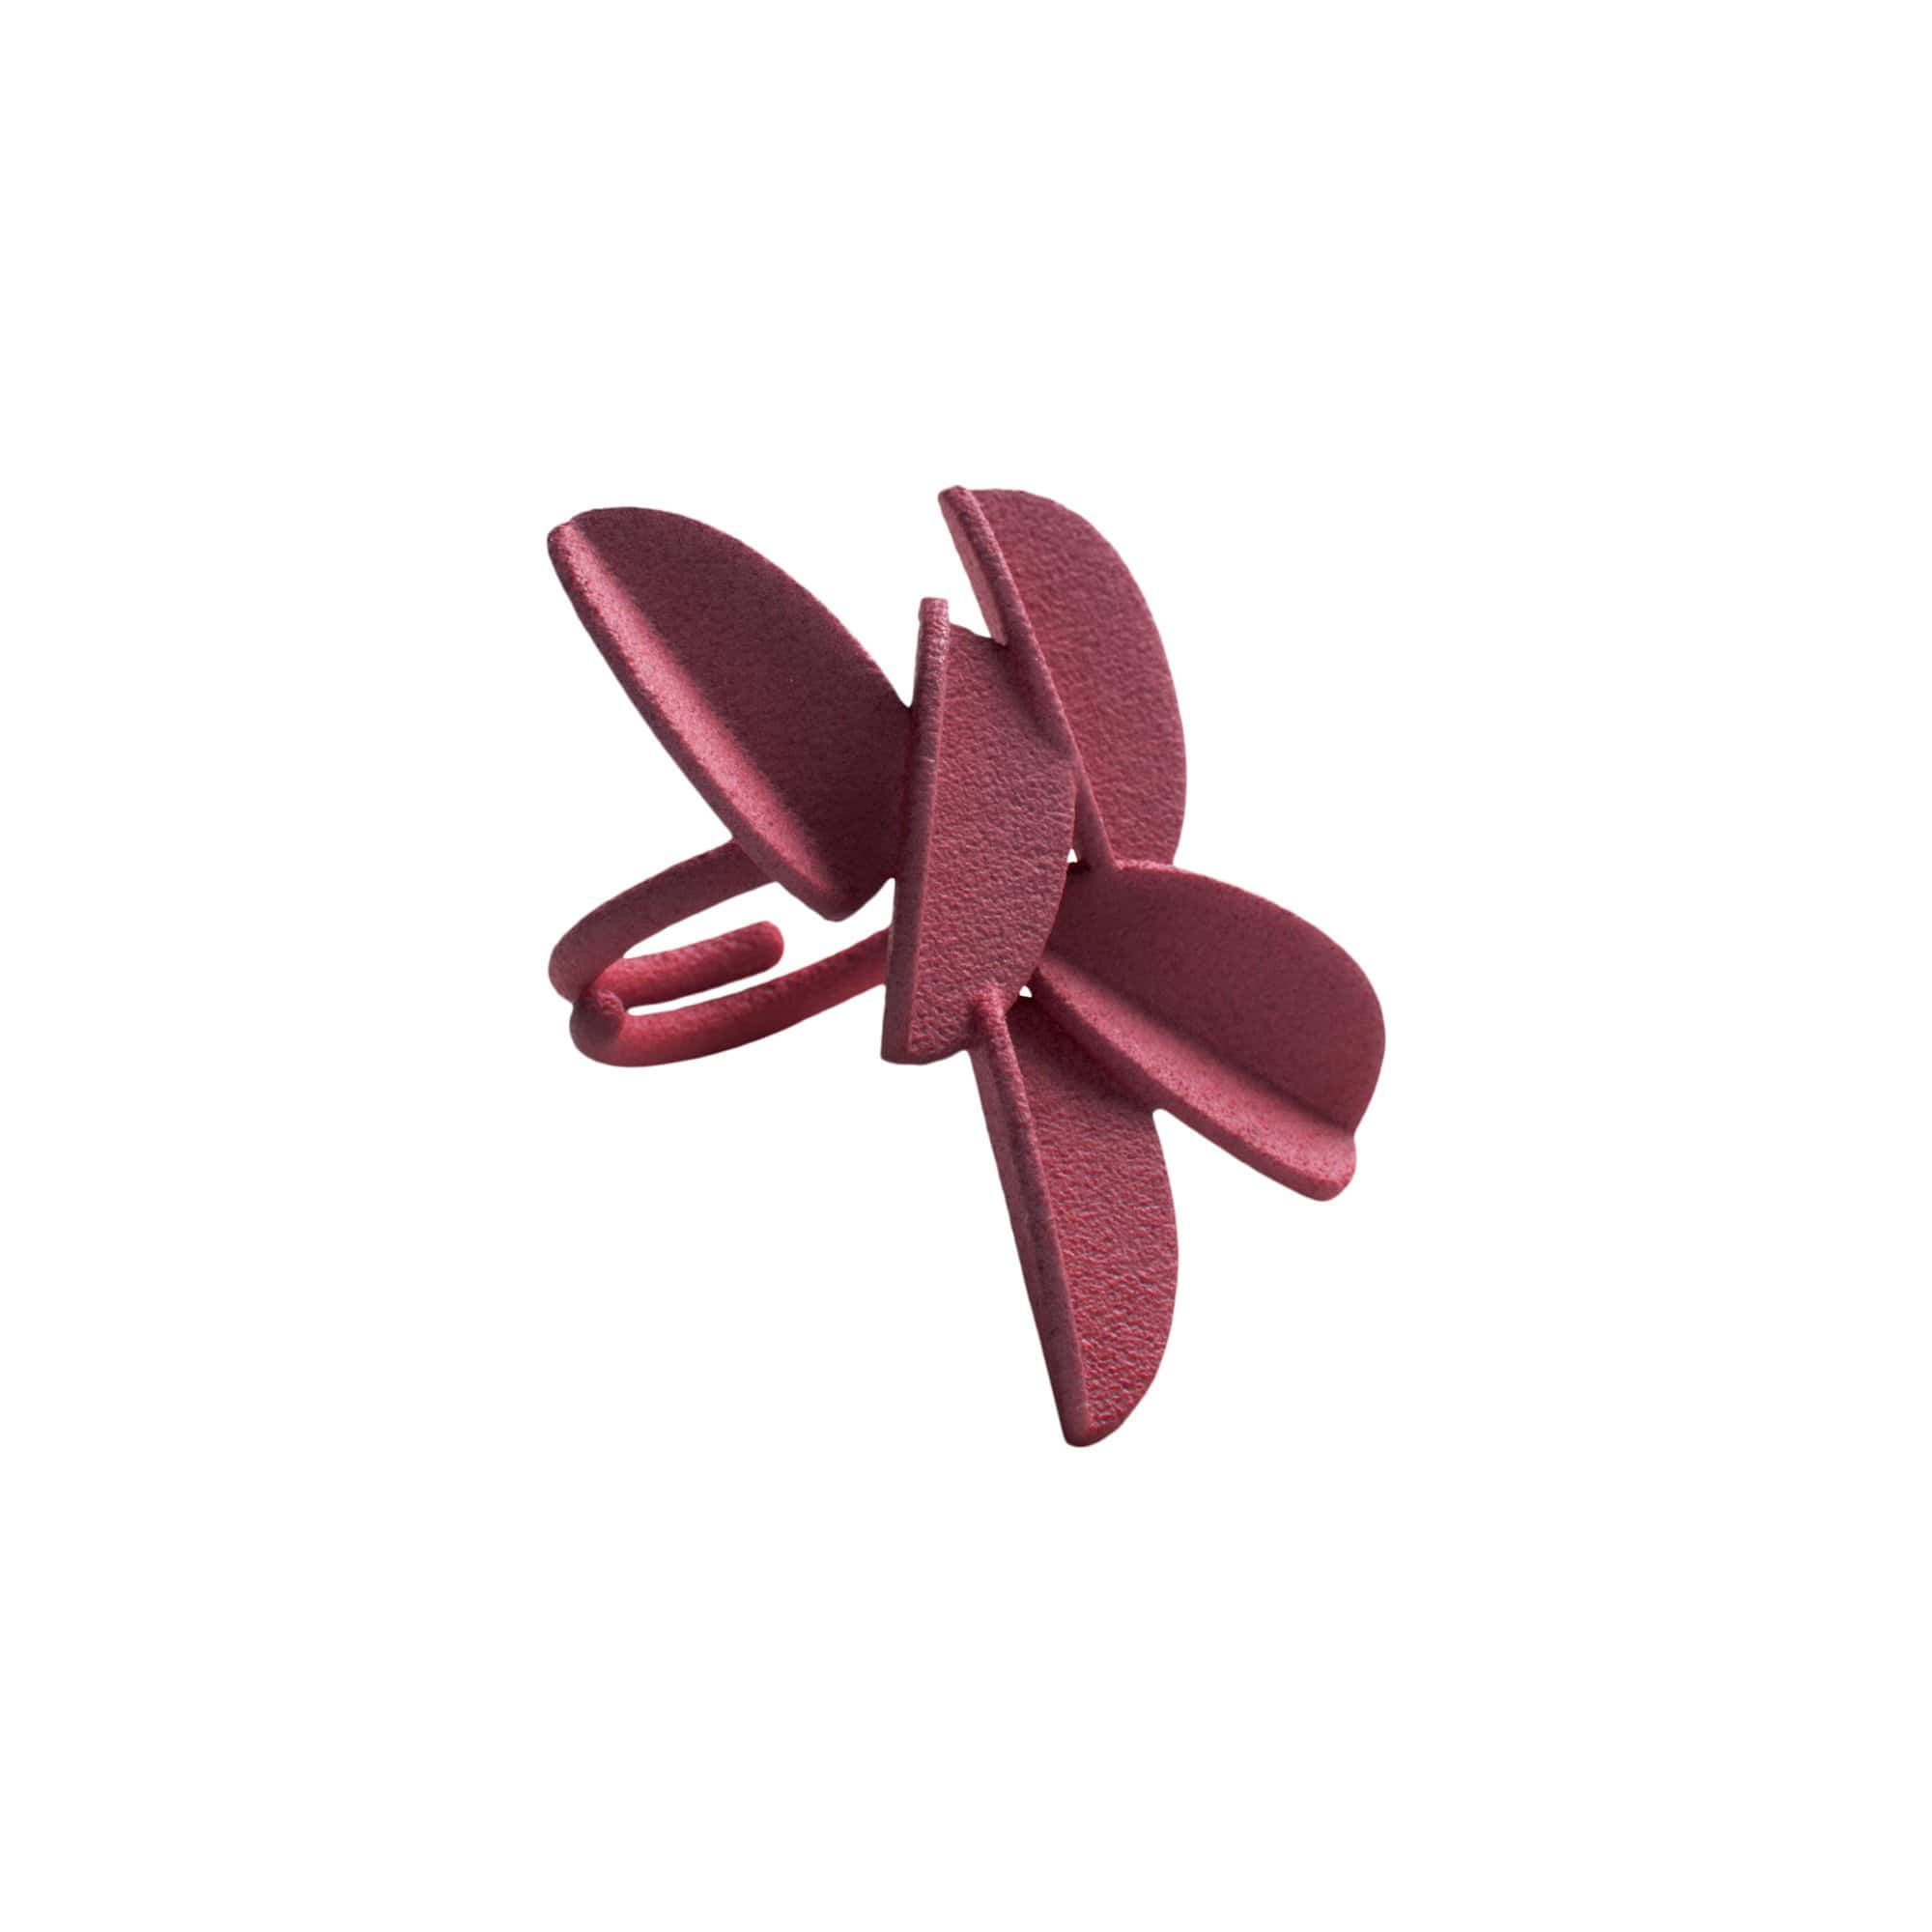 maison 203 Rings Burgundy Leaves Ring